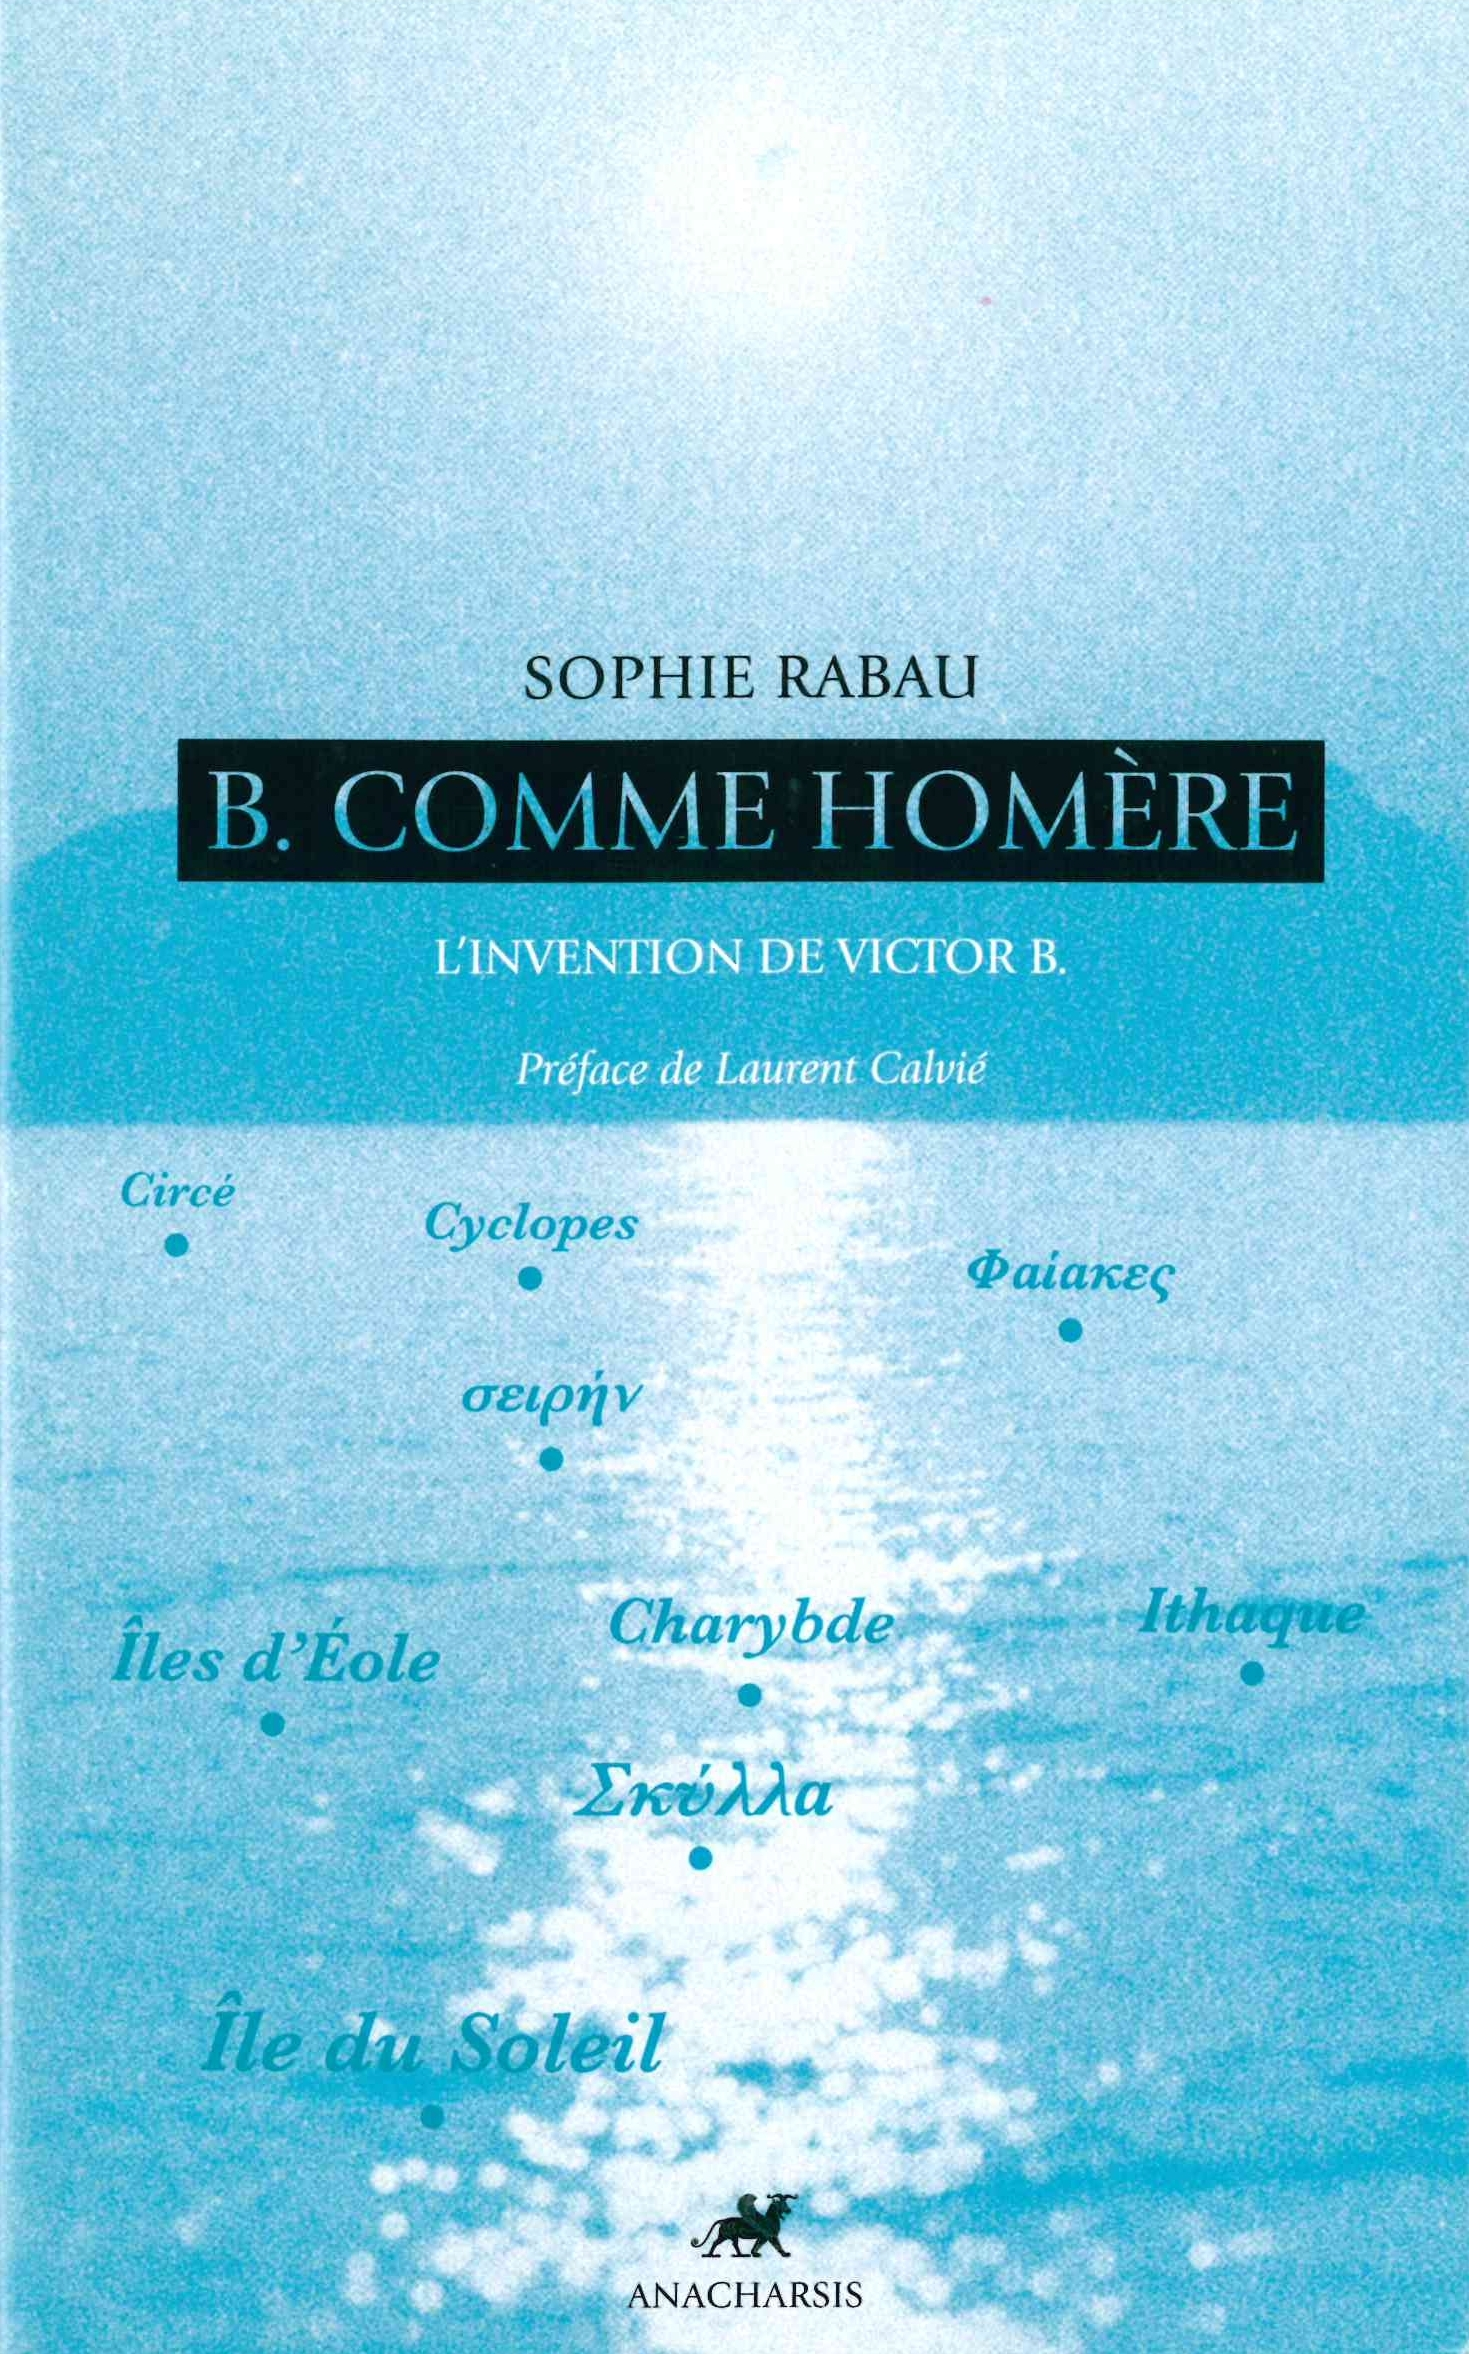 B. COMME HOMERE - L'INVENTION DE VICTOR B.